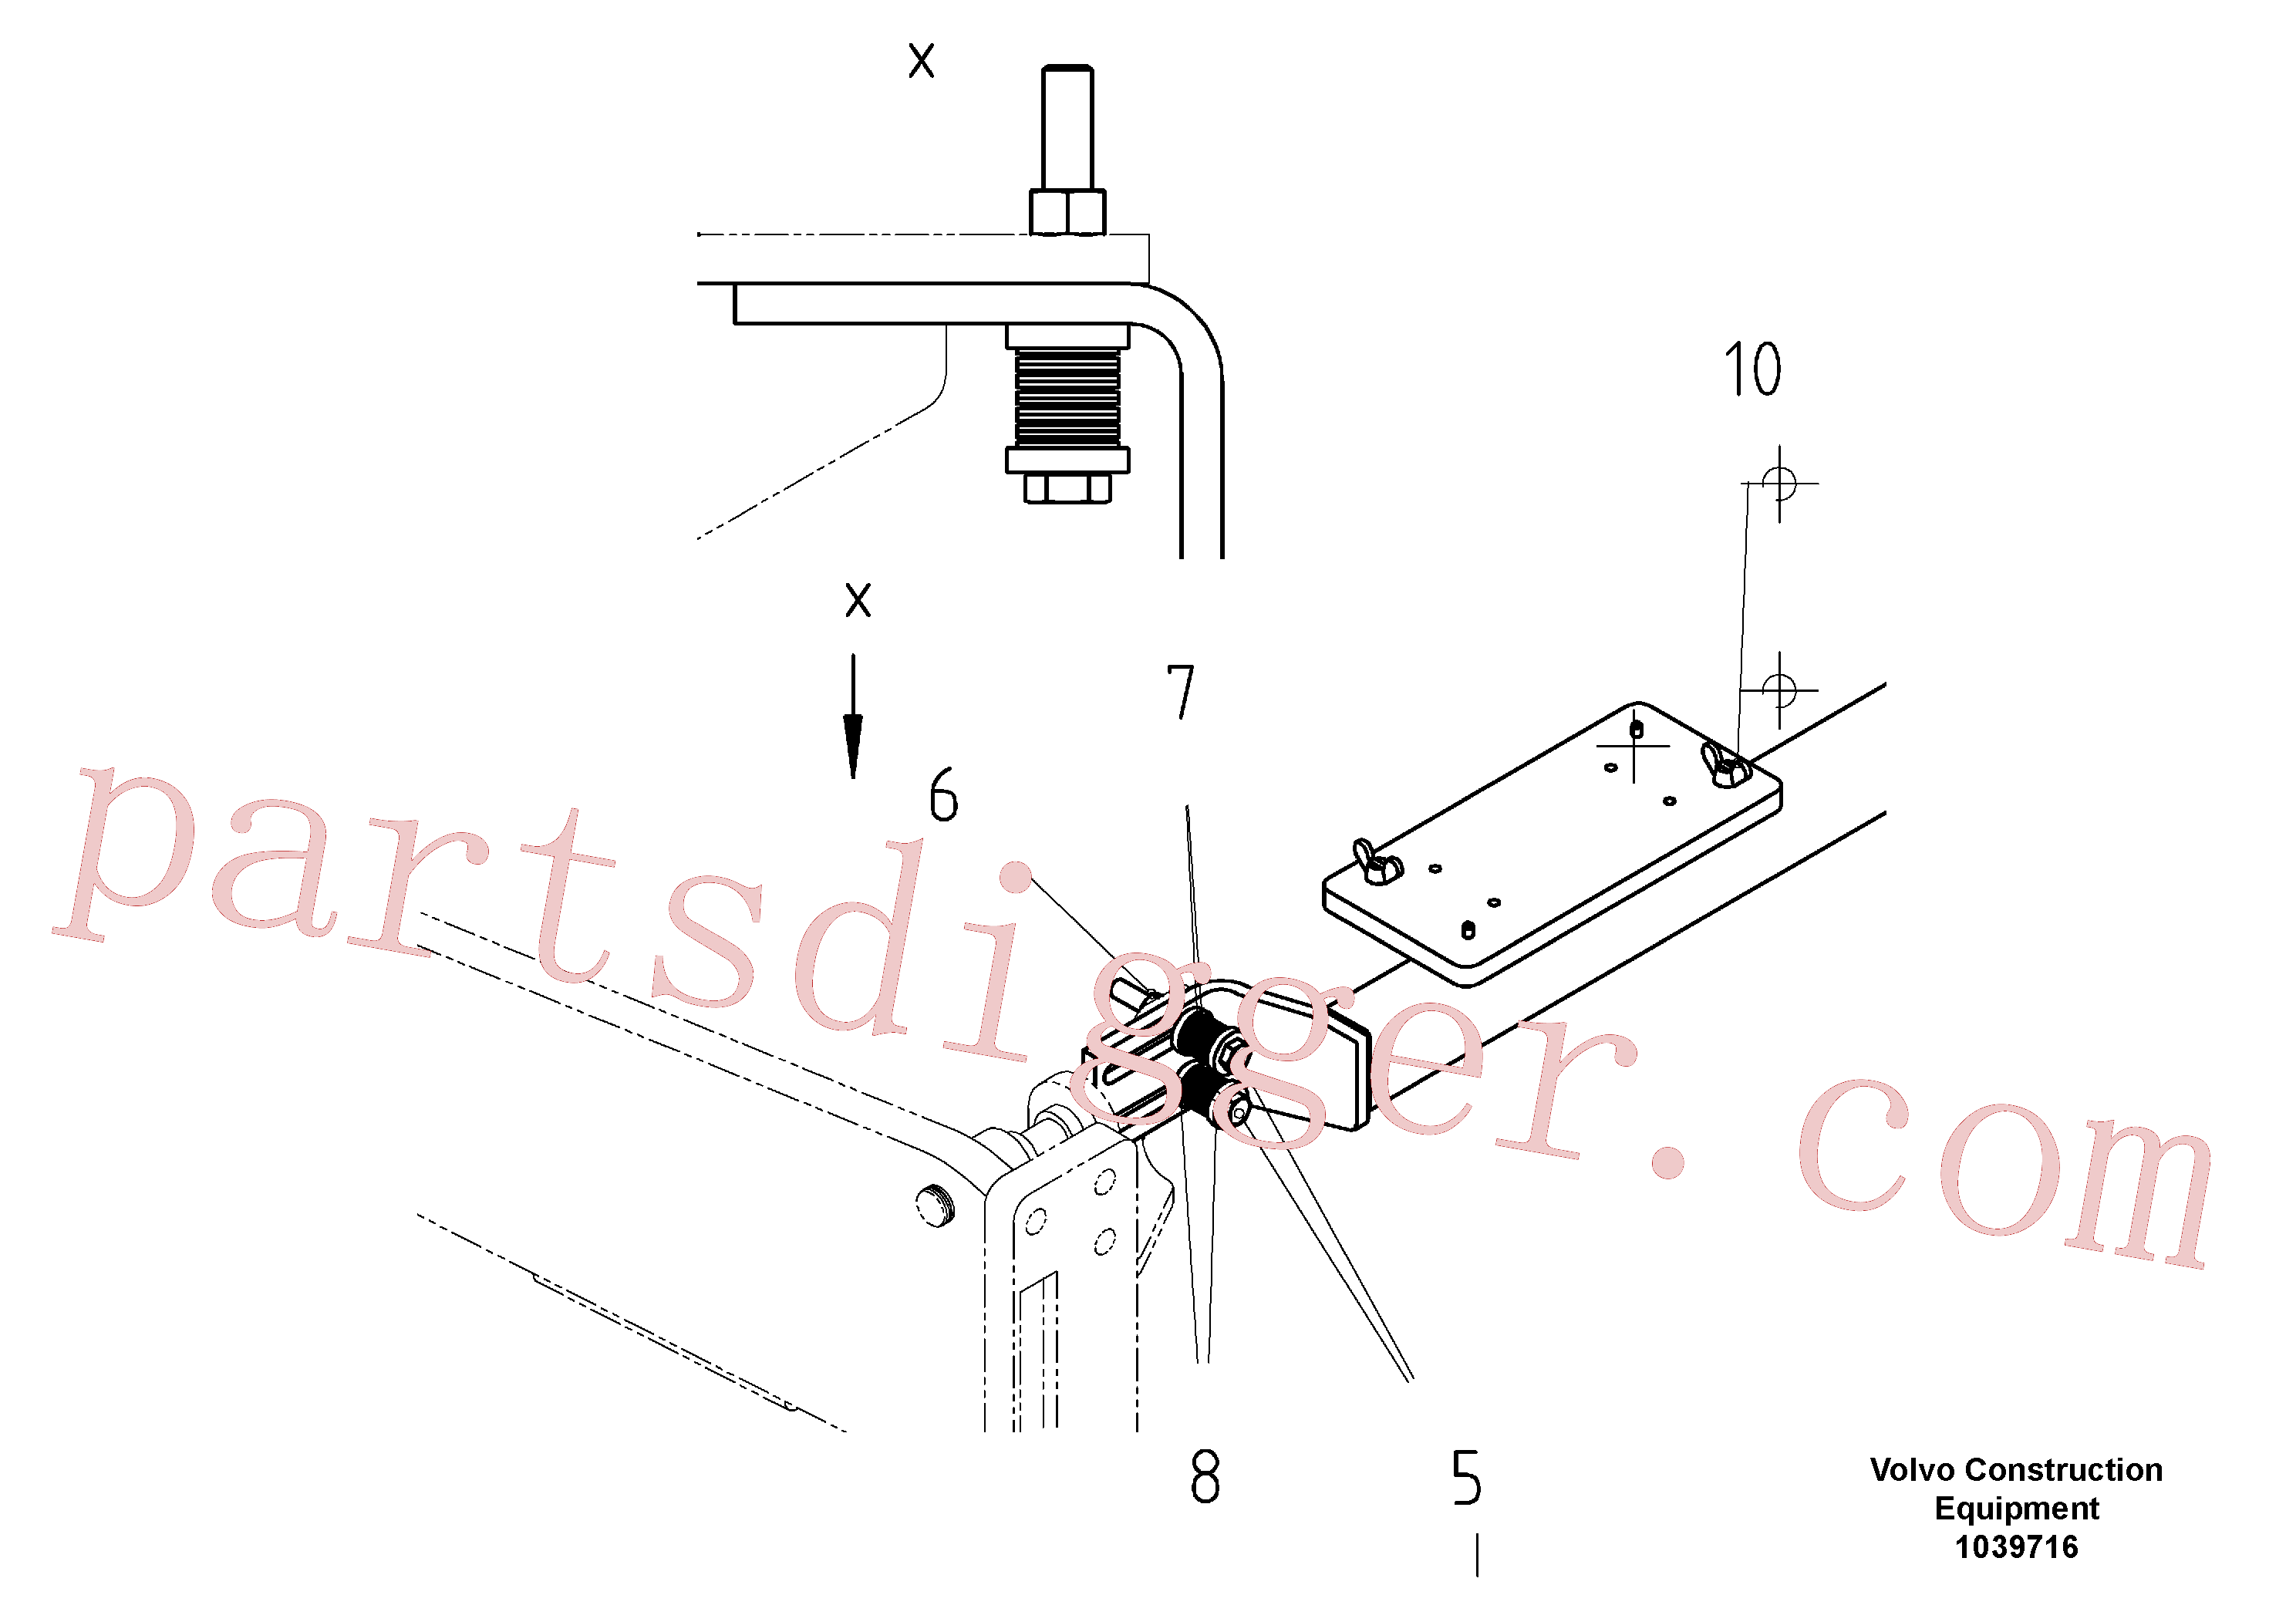 RM96745393 for Volvo Support For Slope Control(1039716 assembly)